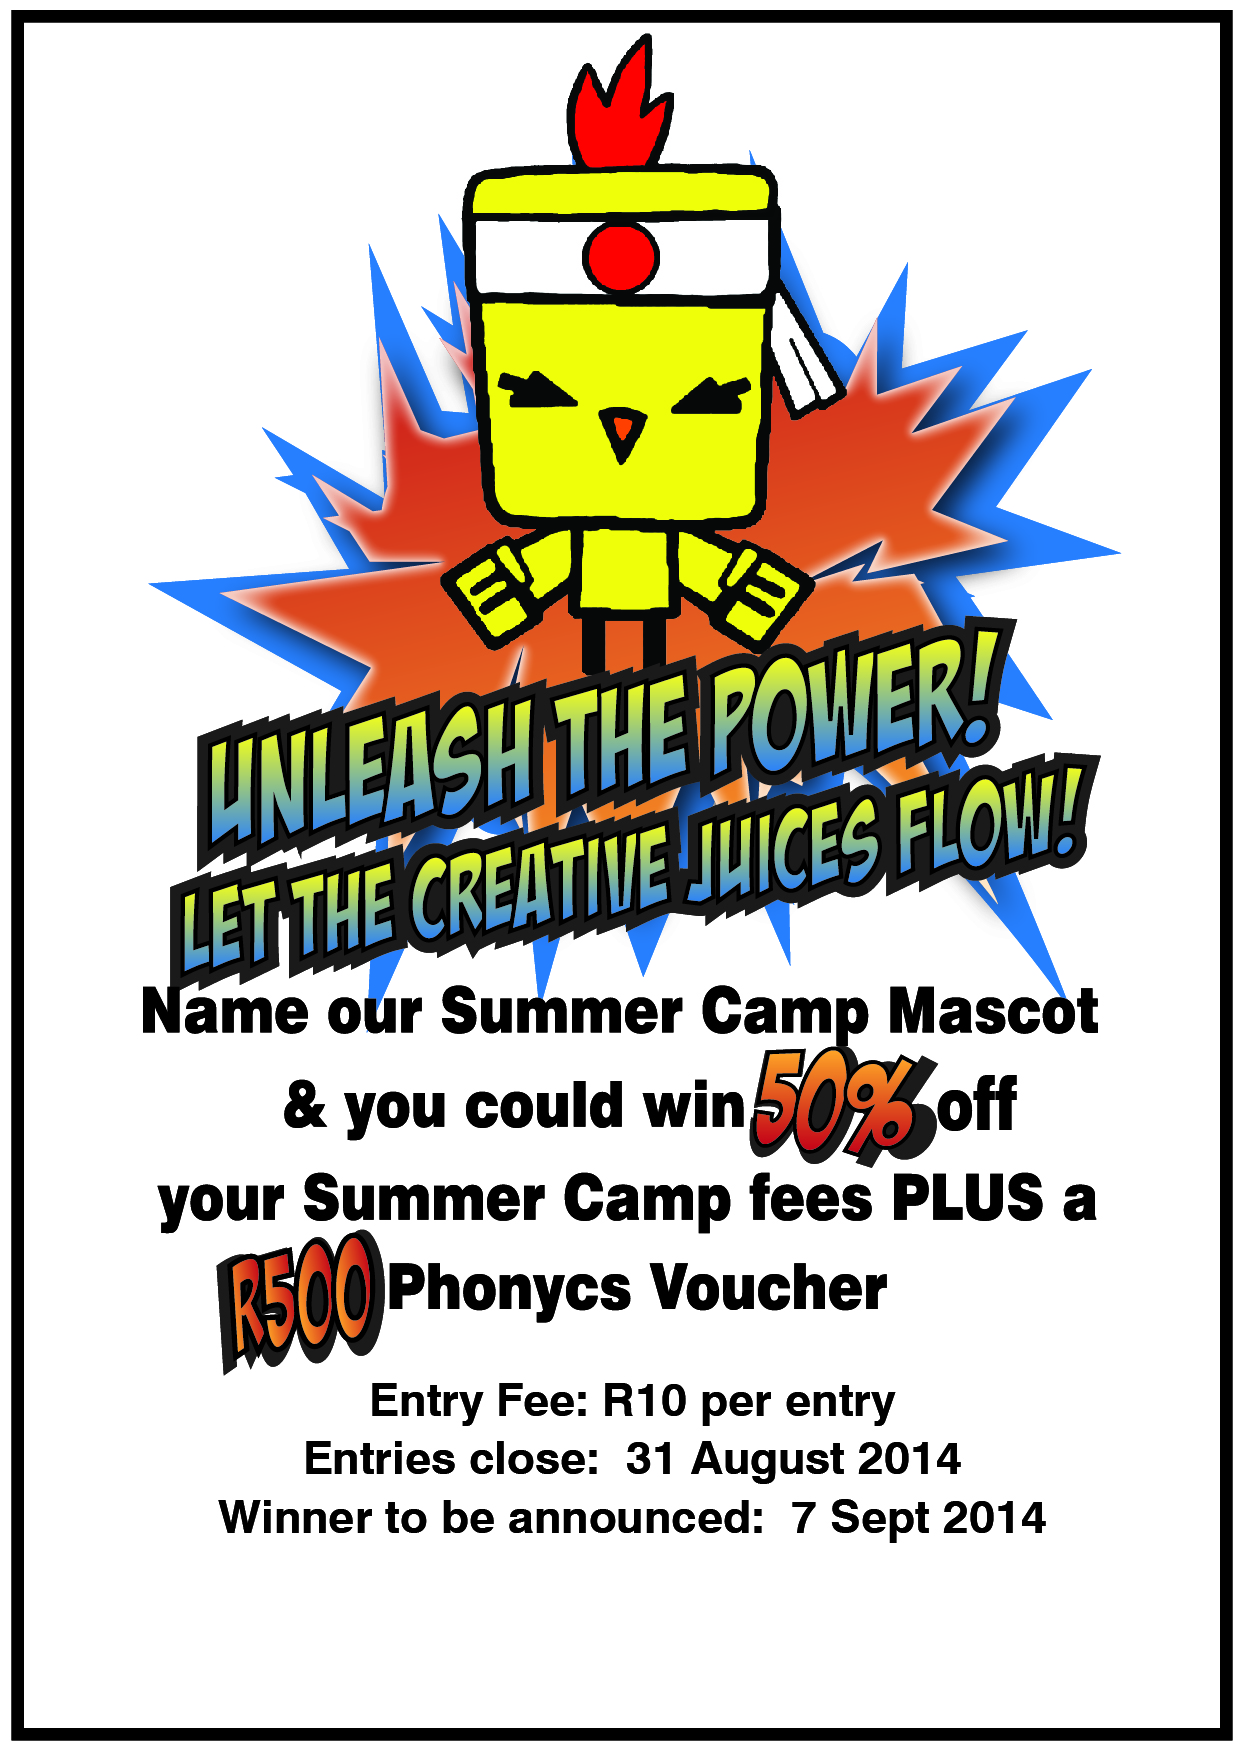 Summer Camp Mascot Competition